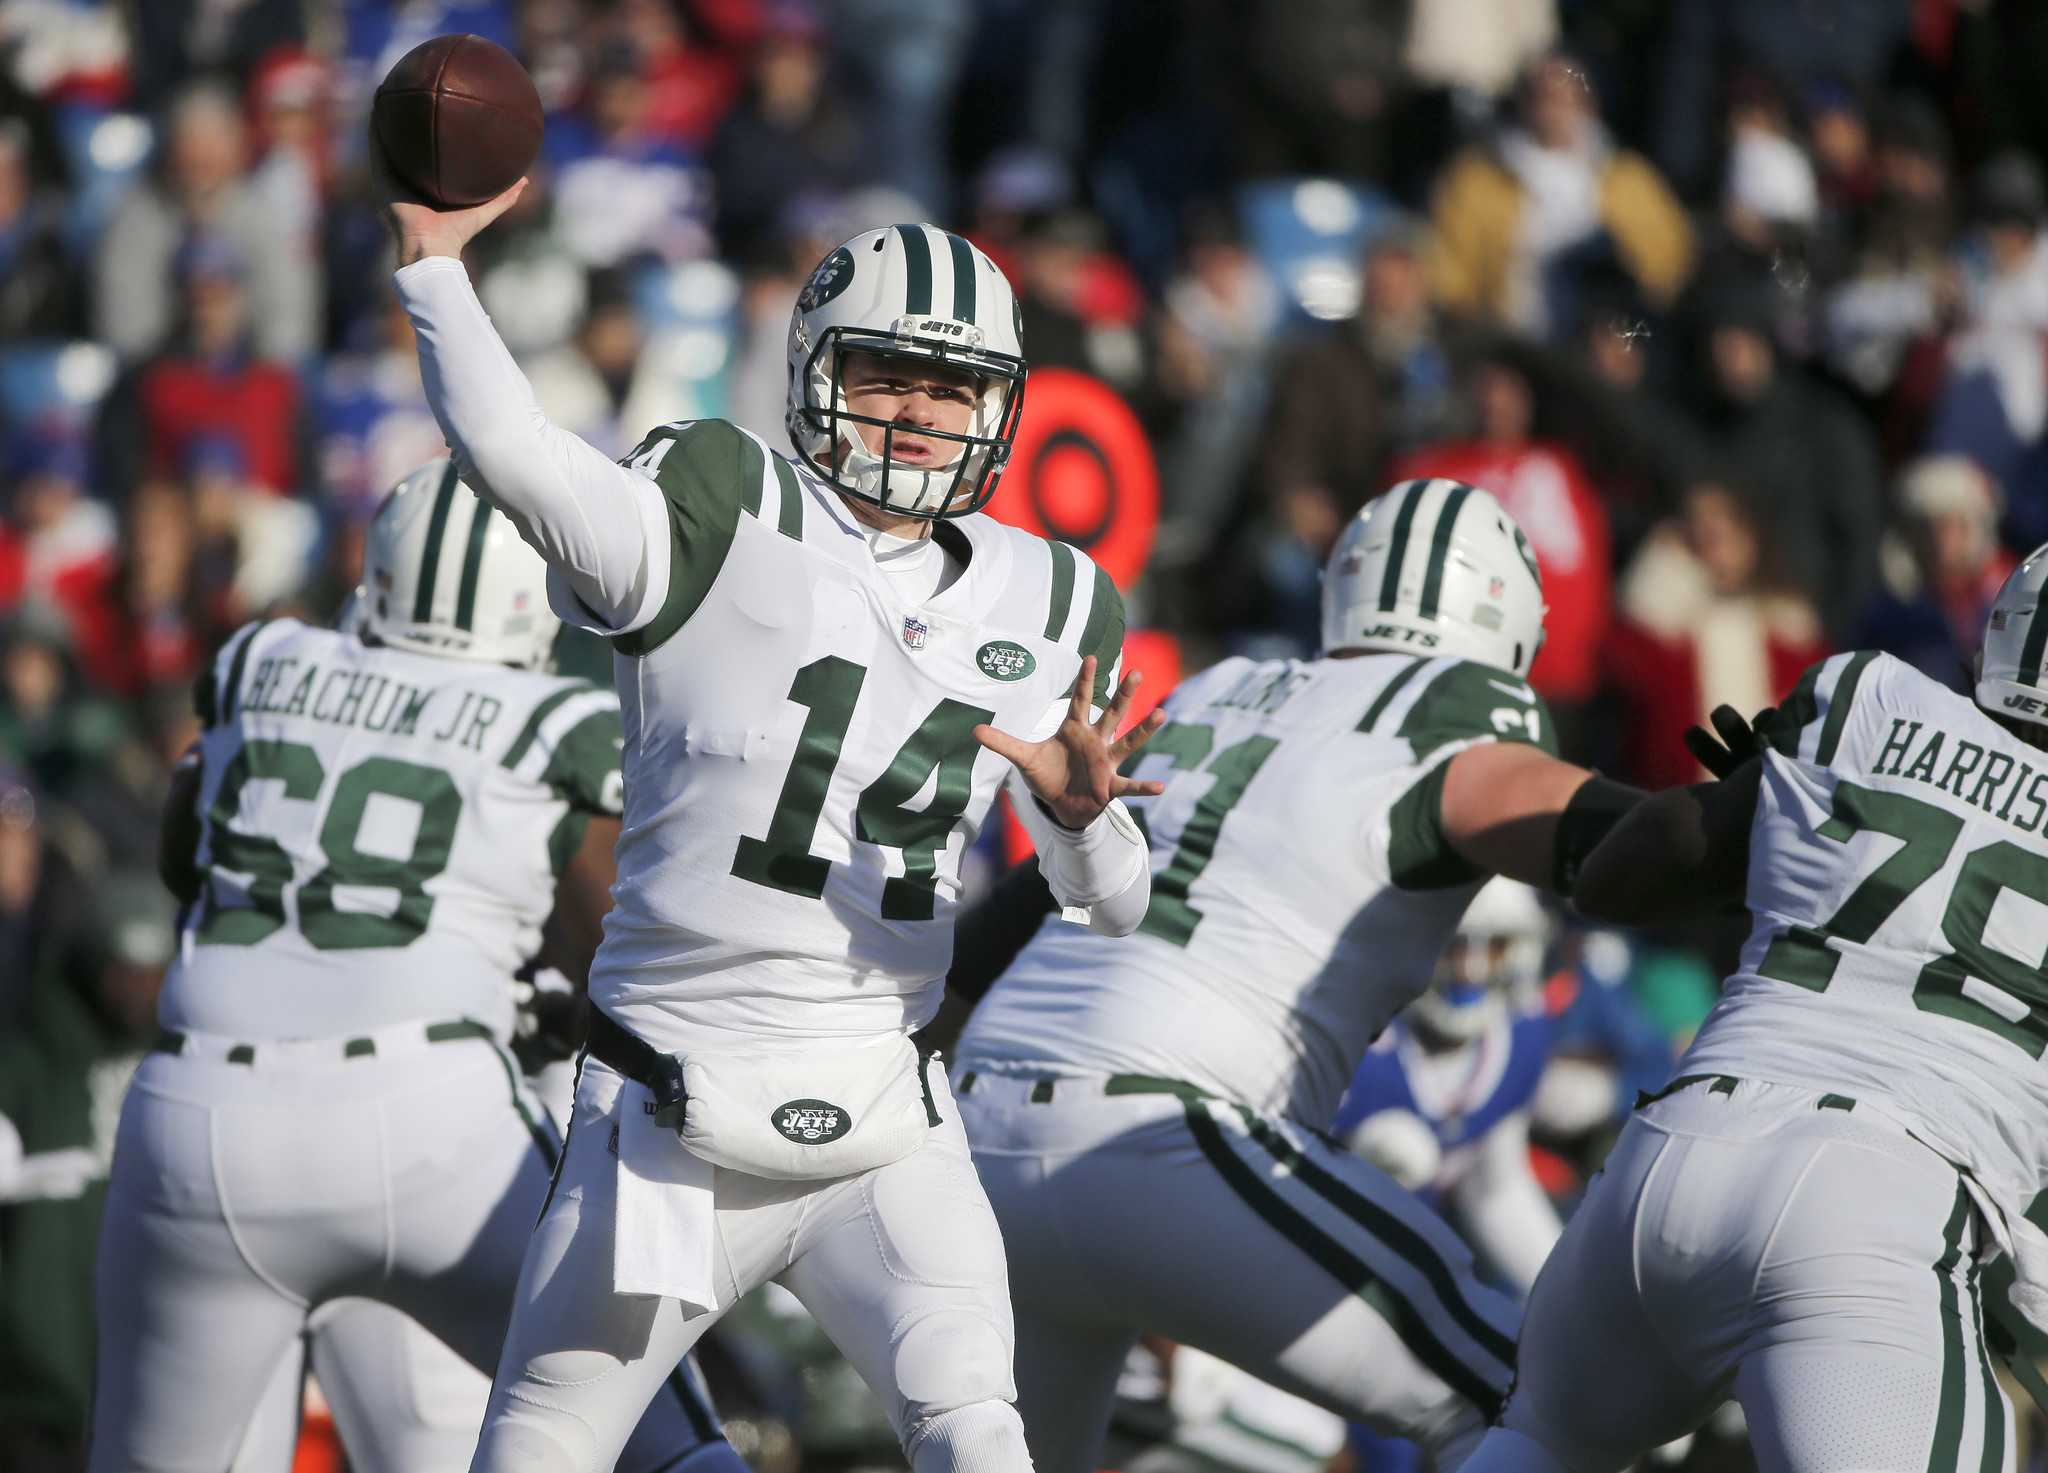 Mehta: Sam Darnold carries Jets to comeback win vs. Bills and gives fans peek into future